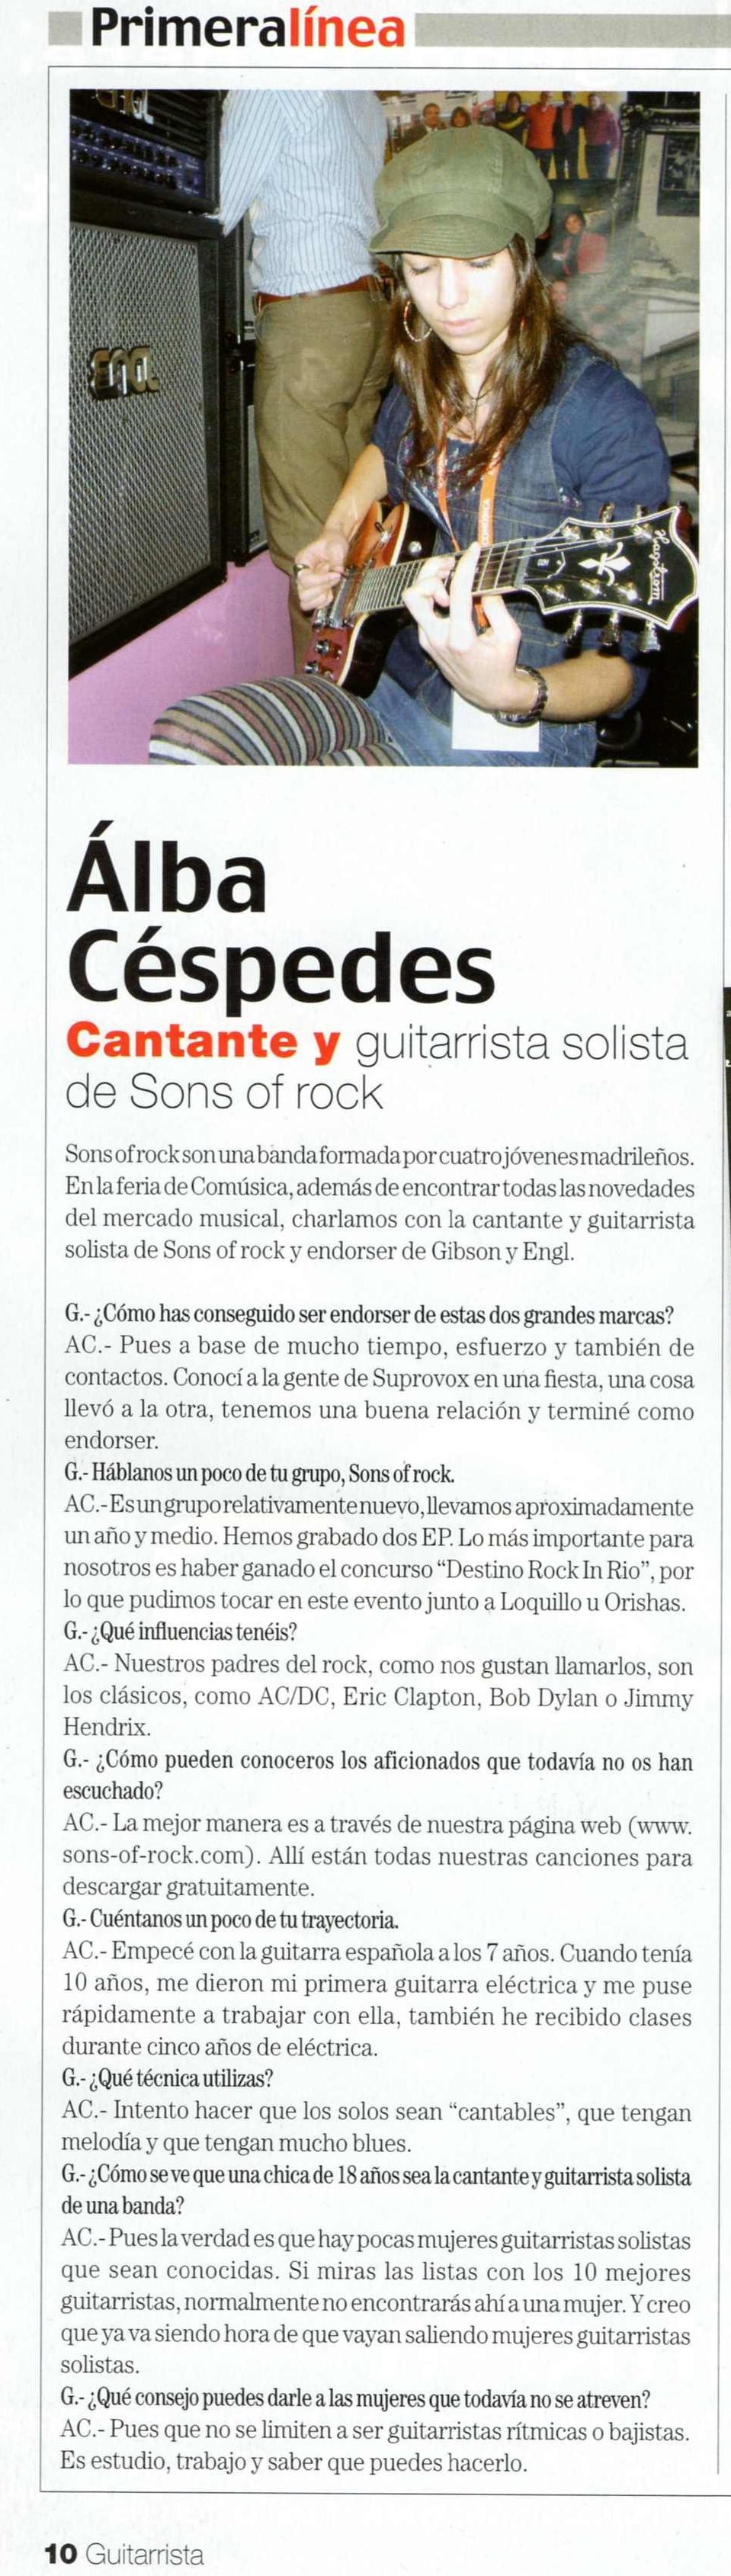 Interview in Guitarrista